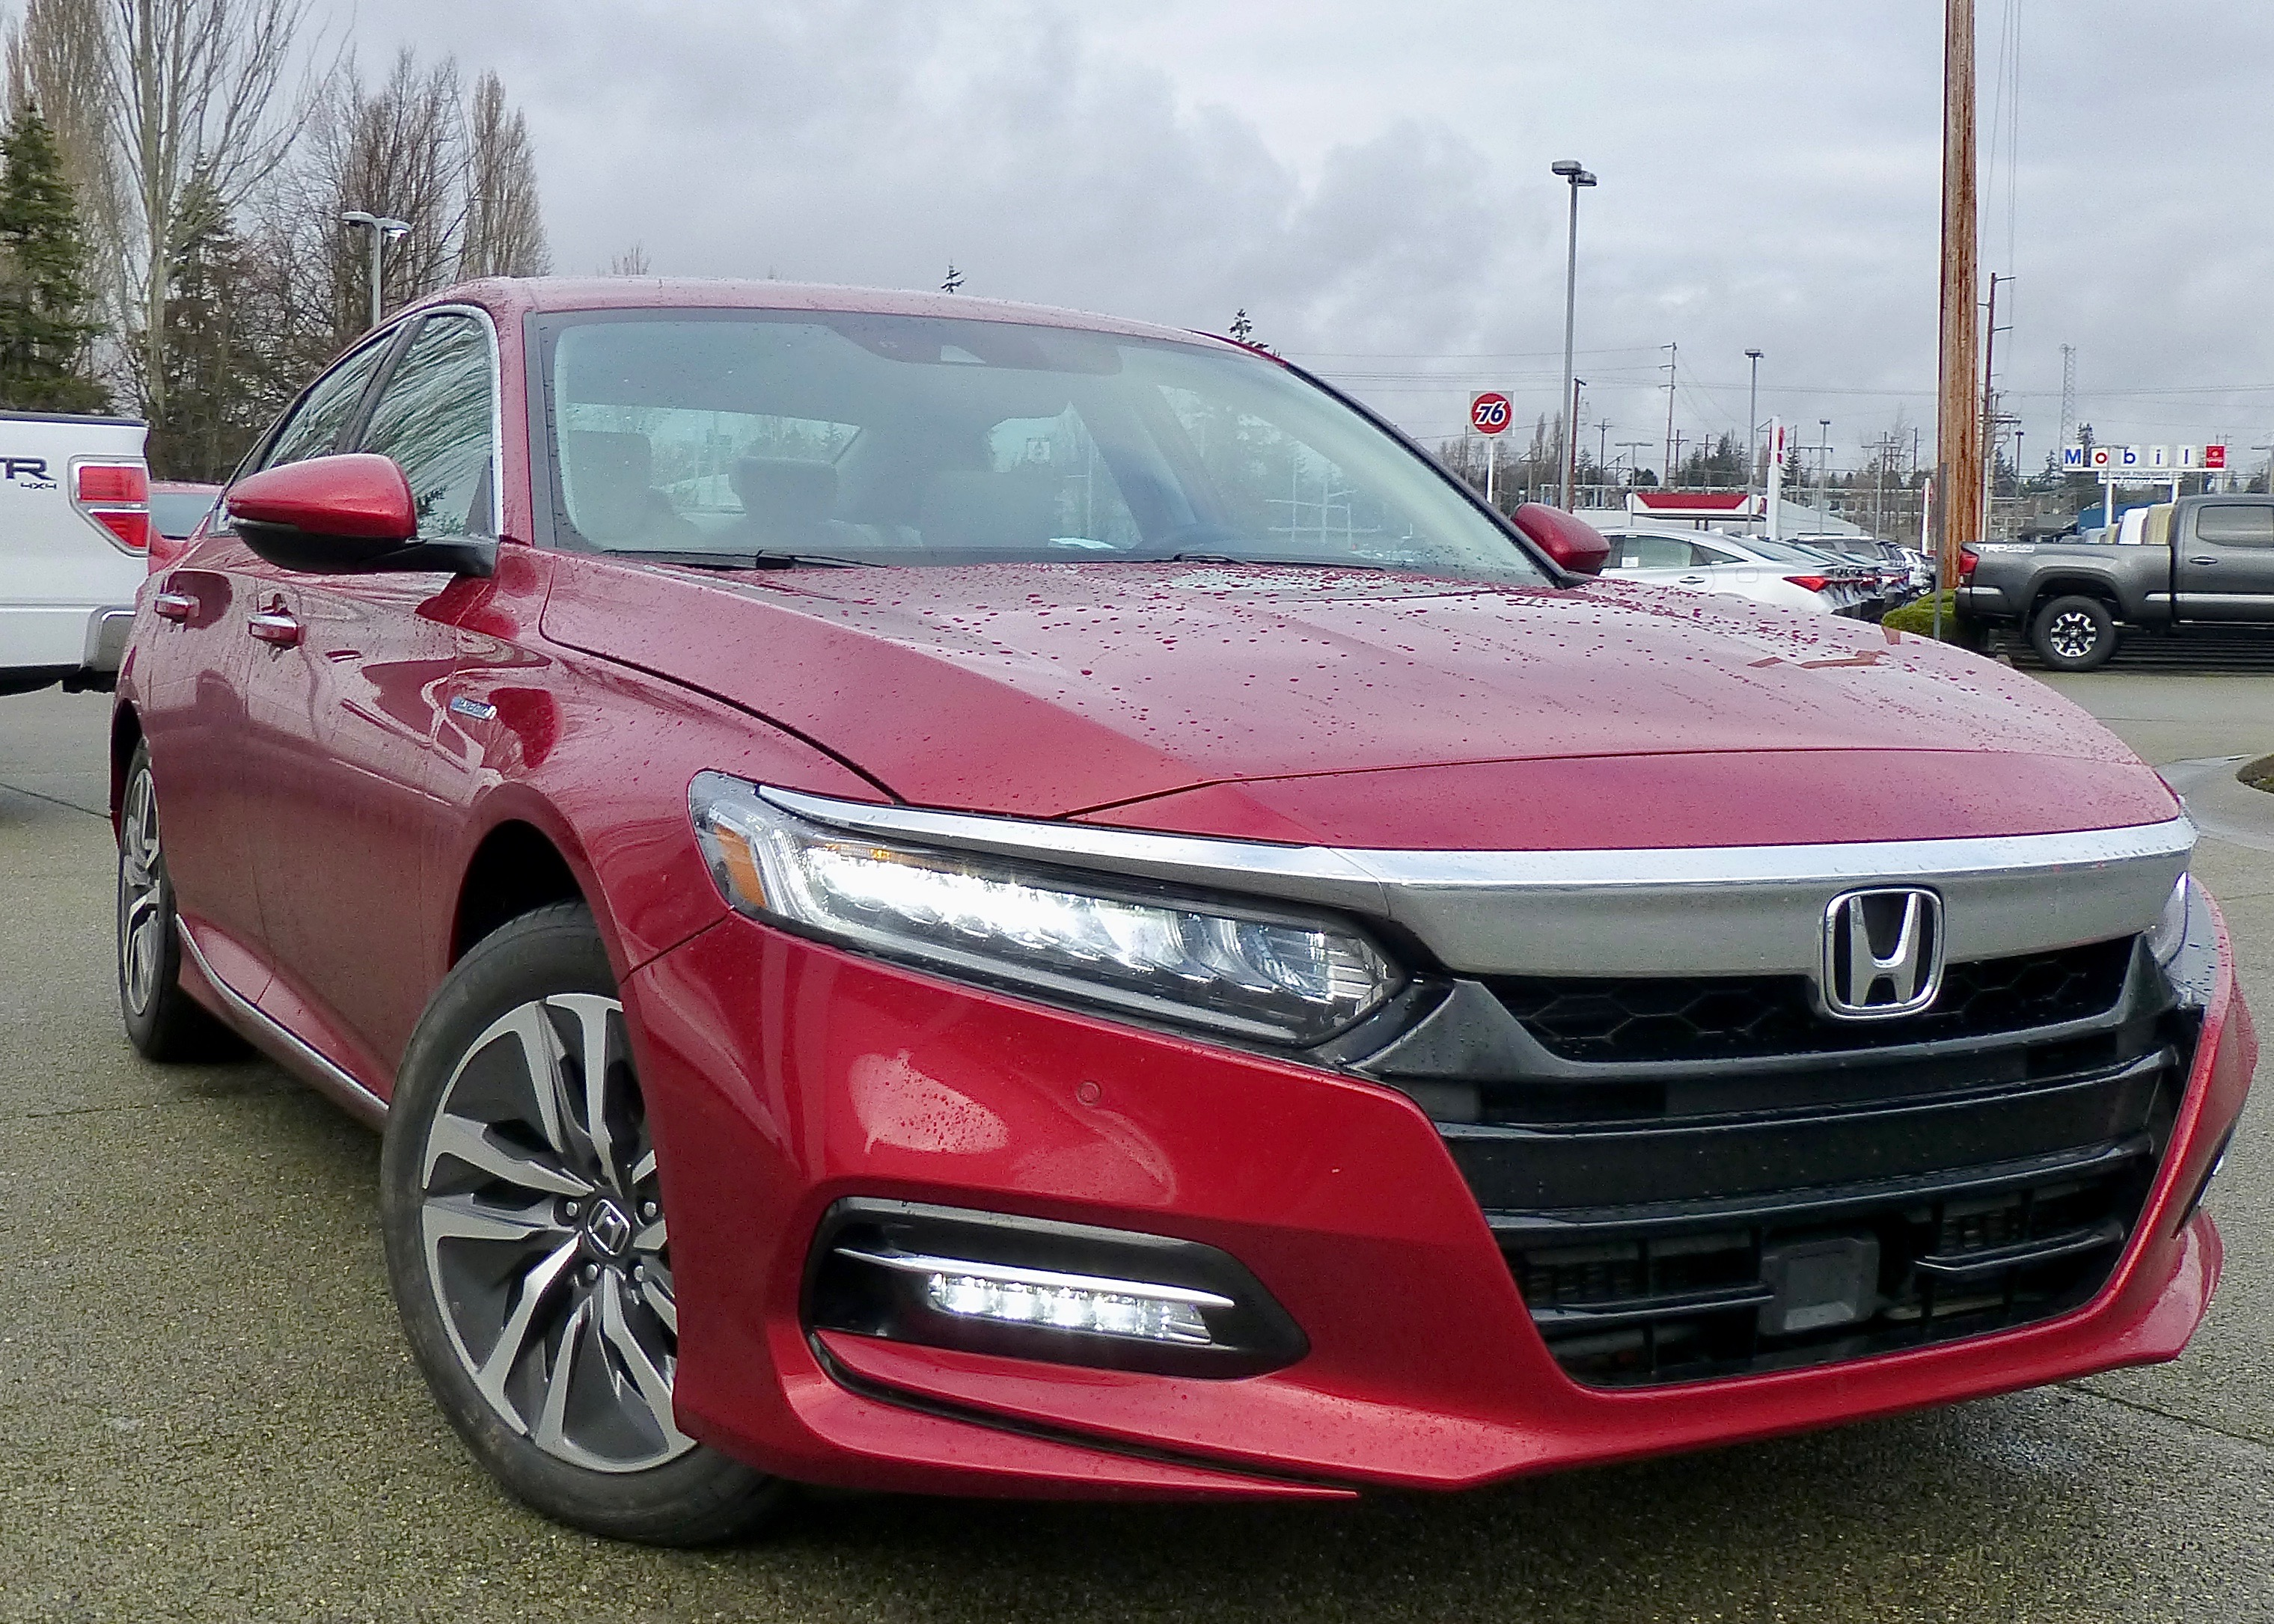 Accord is bigger and bertter for 2019, and the hybrid version adds power and fuel economy.